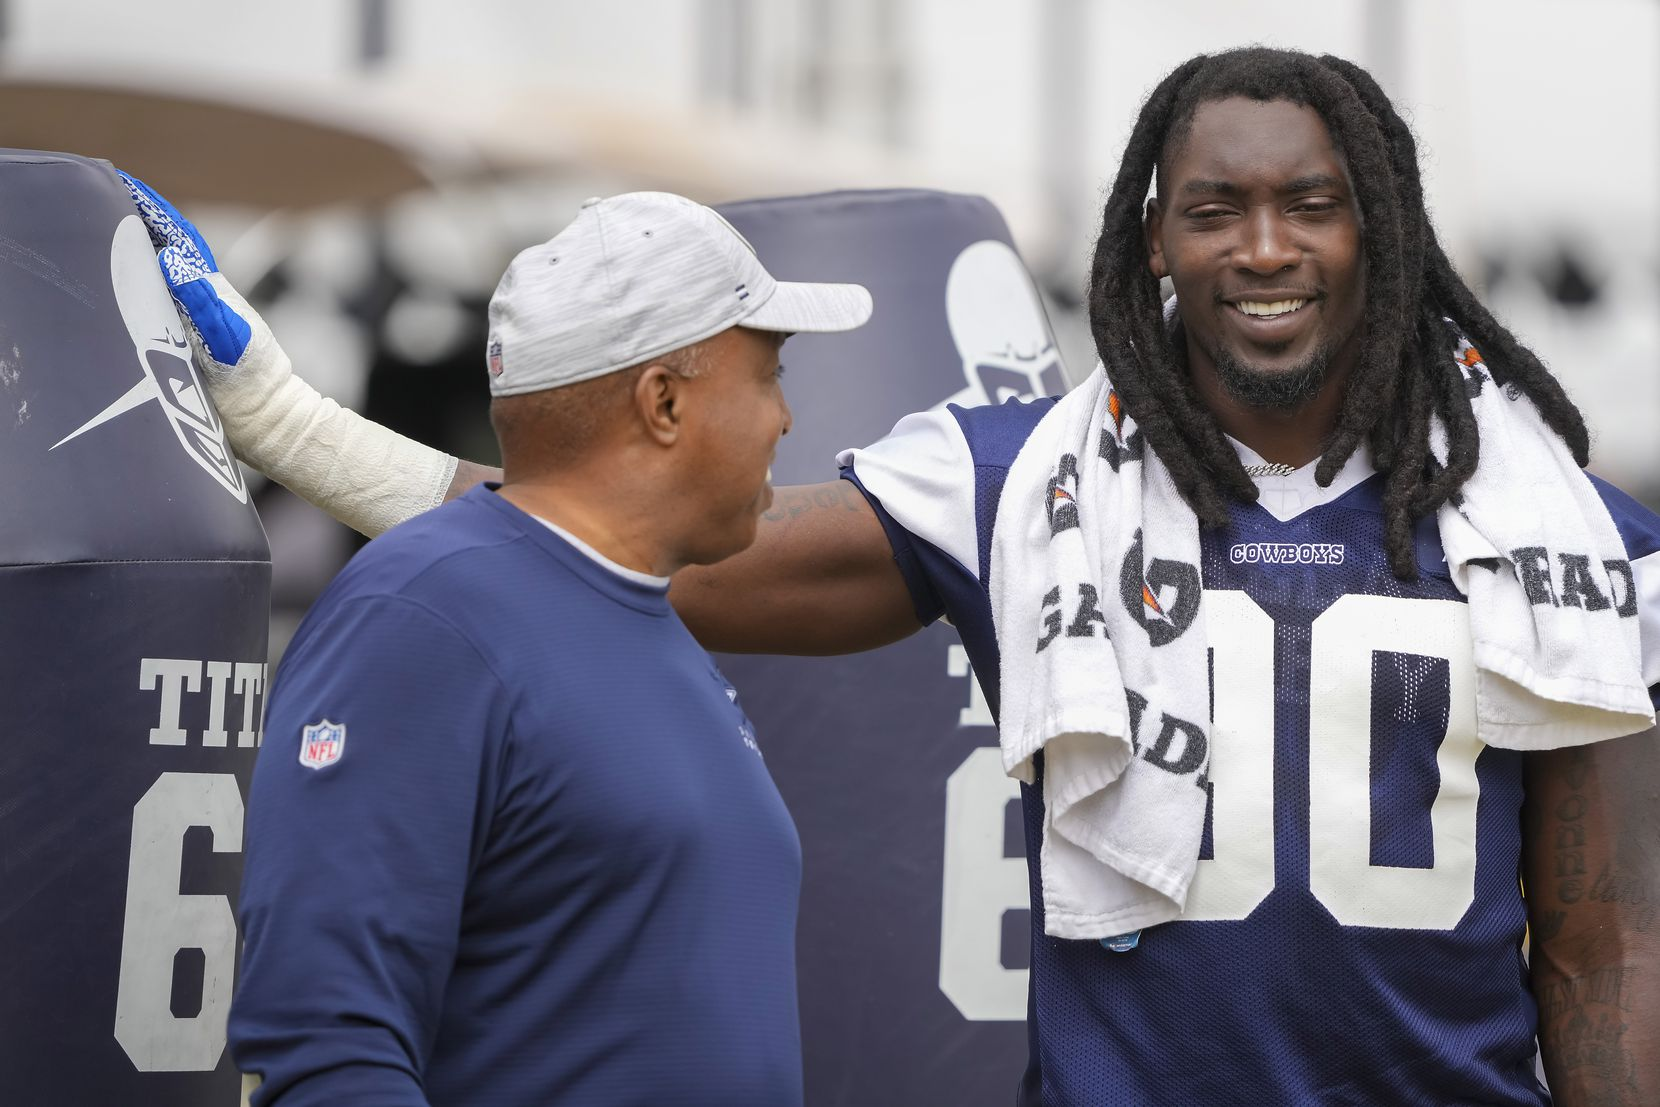 Dallas Cowboys defensive end DeMarcus Lawrence (90) laughs with sr. defensive assistantGeorge Edwards during a practice at training camp on Saturday, July 31, 2021, in Oxnard, Calif.